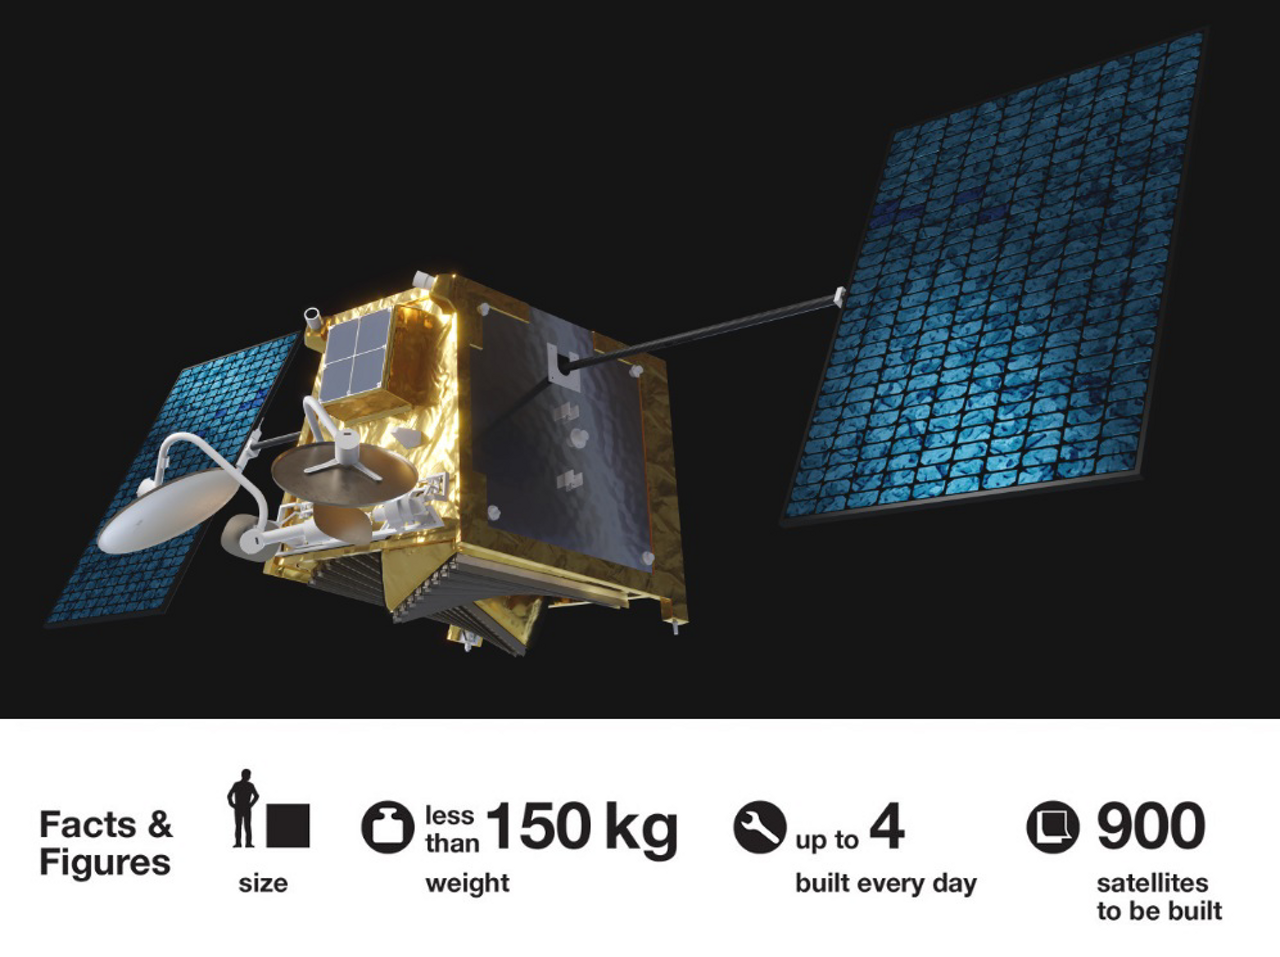 An infographic showing an Airbus-produced OneWeb satellite, along with related facts and figures.